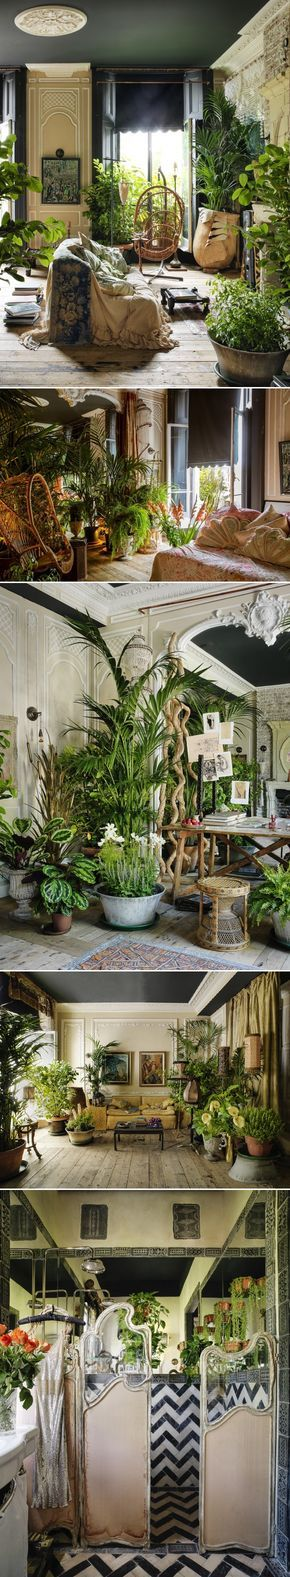 Interior designer Sera Hersham-Loftus's bohemian, plant-filled home is the definition of jungalow style.